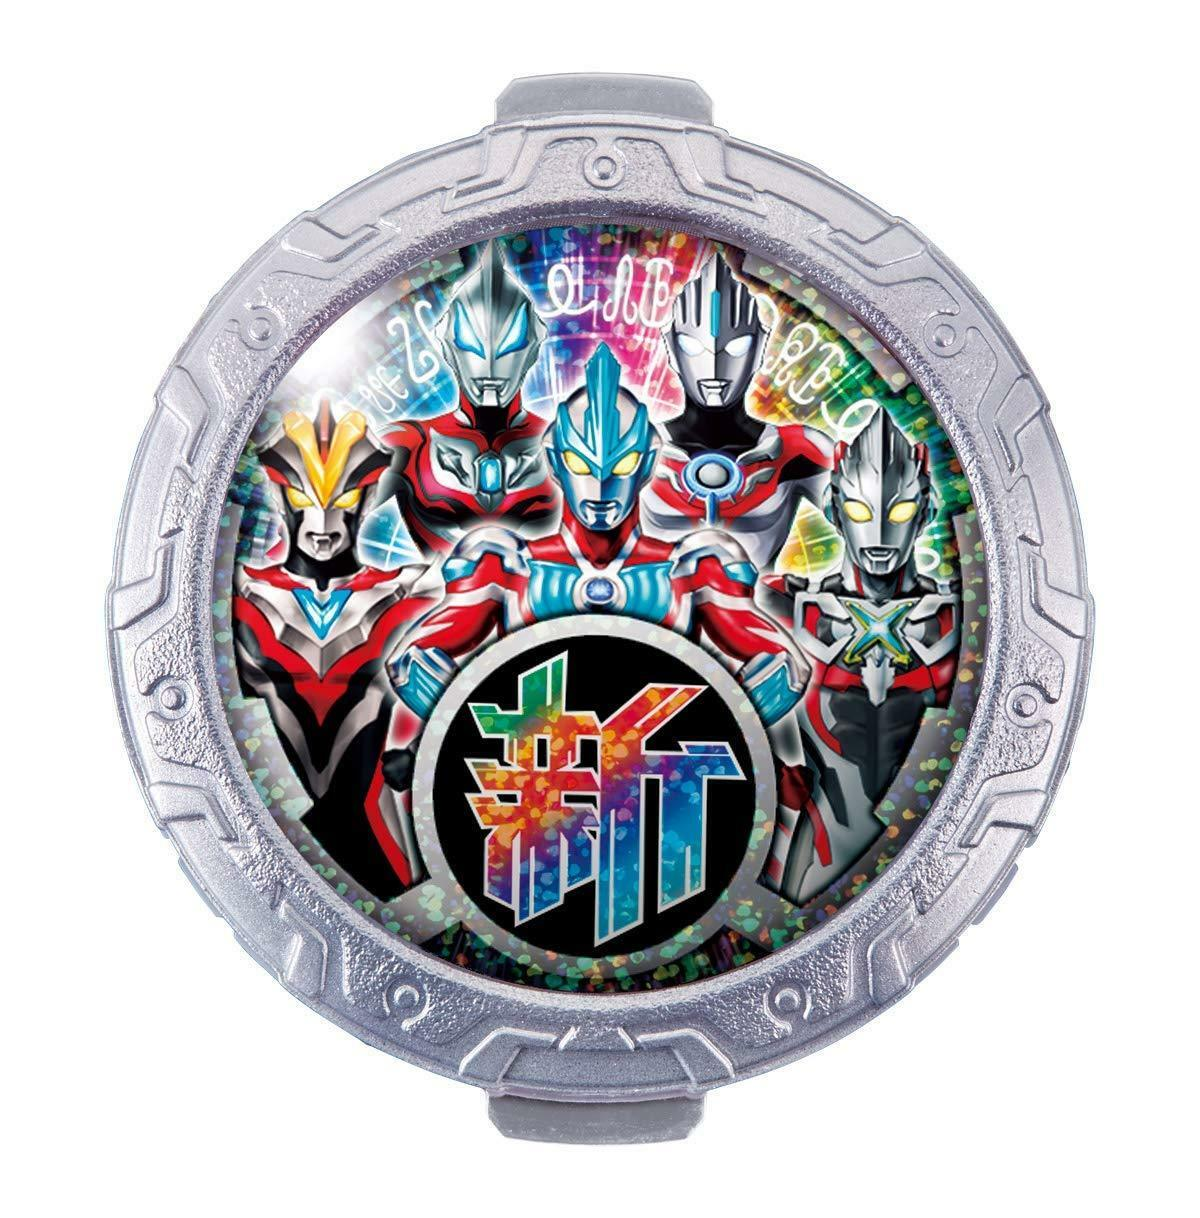 Japan Ultraman R/B Limited Edition New Generation Heroes Crystal Separate Sale